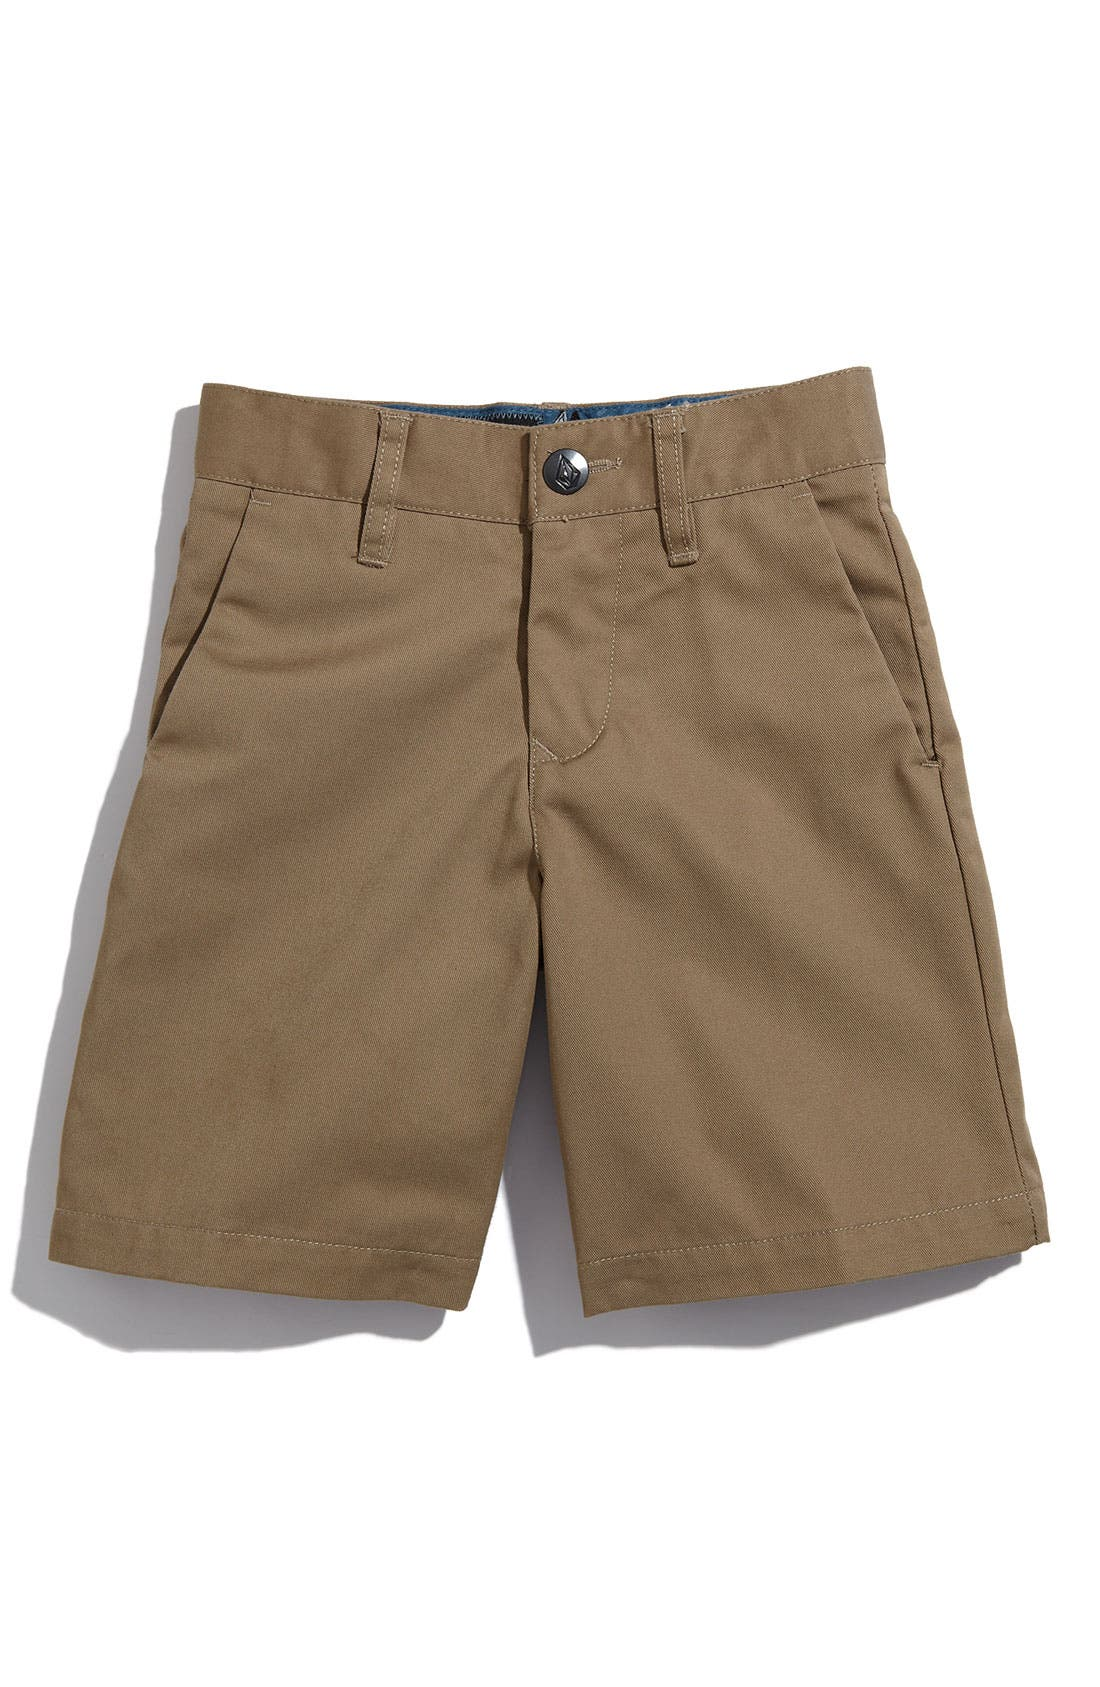 Alternate Image 1 Selected - Volcom 'Modern' Chino Shorts (Toddler Boys)